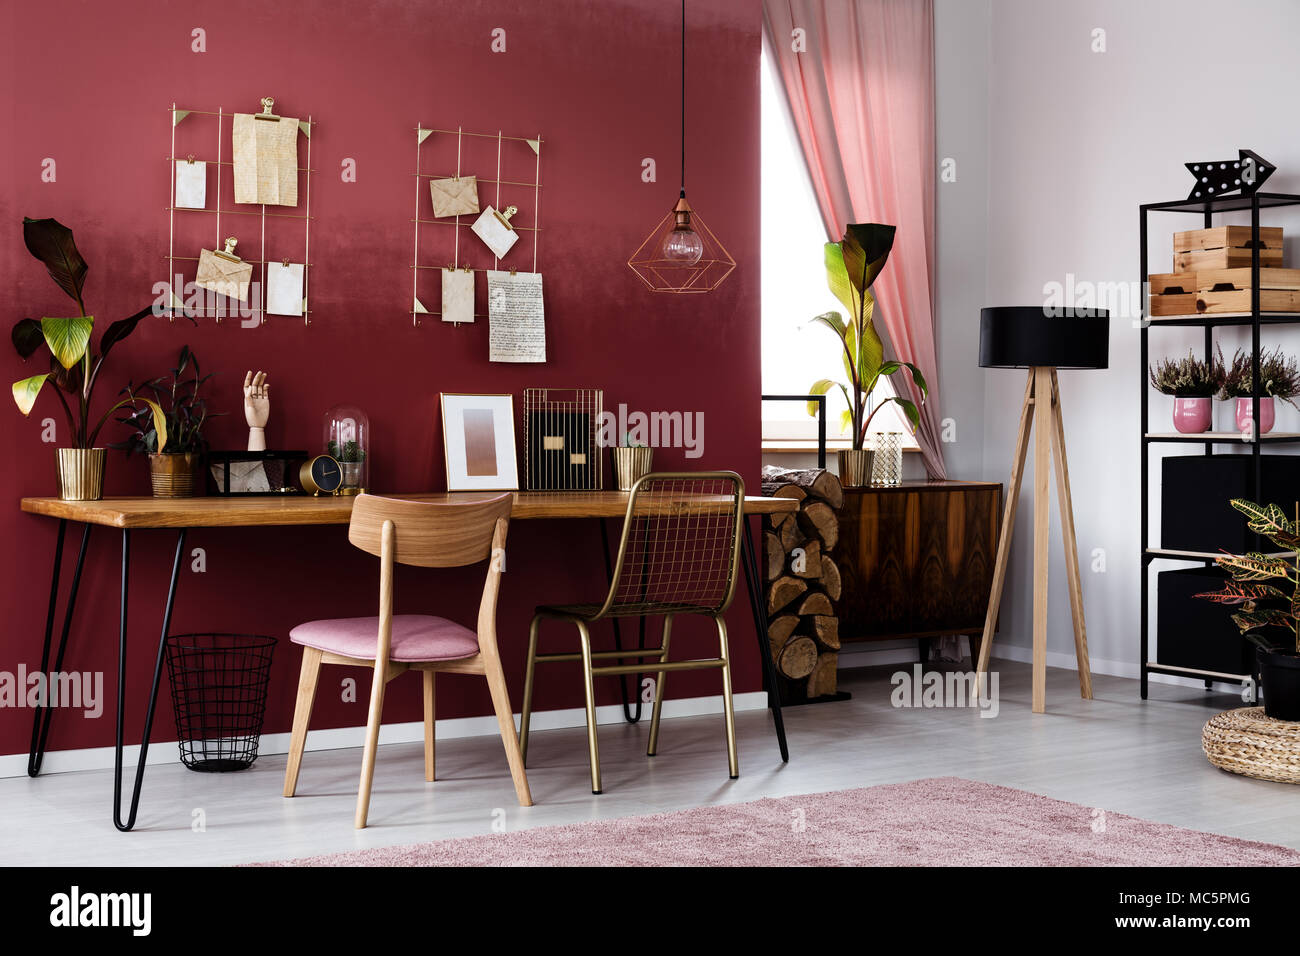 Plant and wooden lamp in dark red home office interior with chair at desk with poster - Stock Image